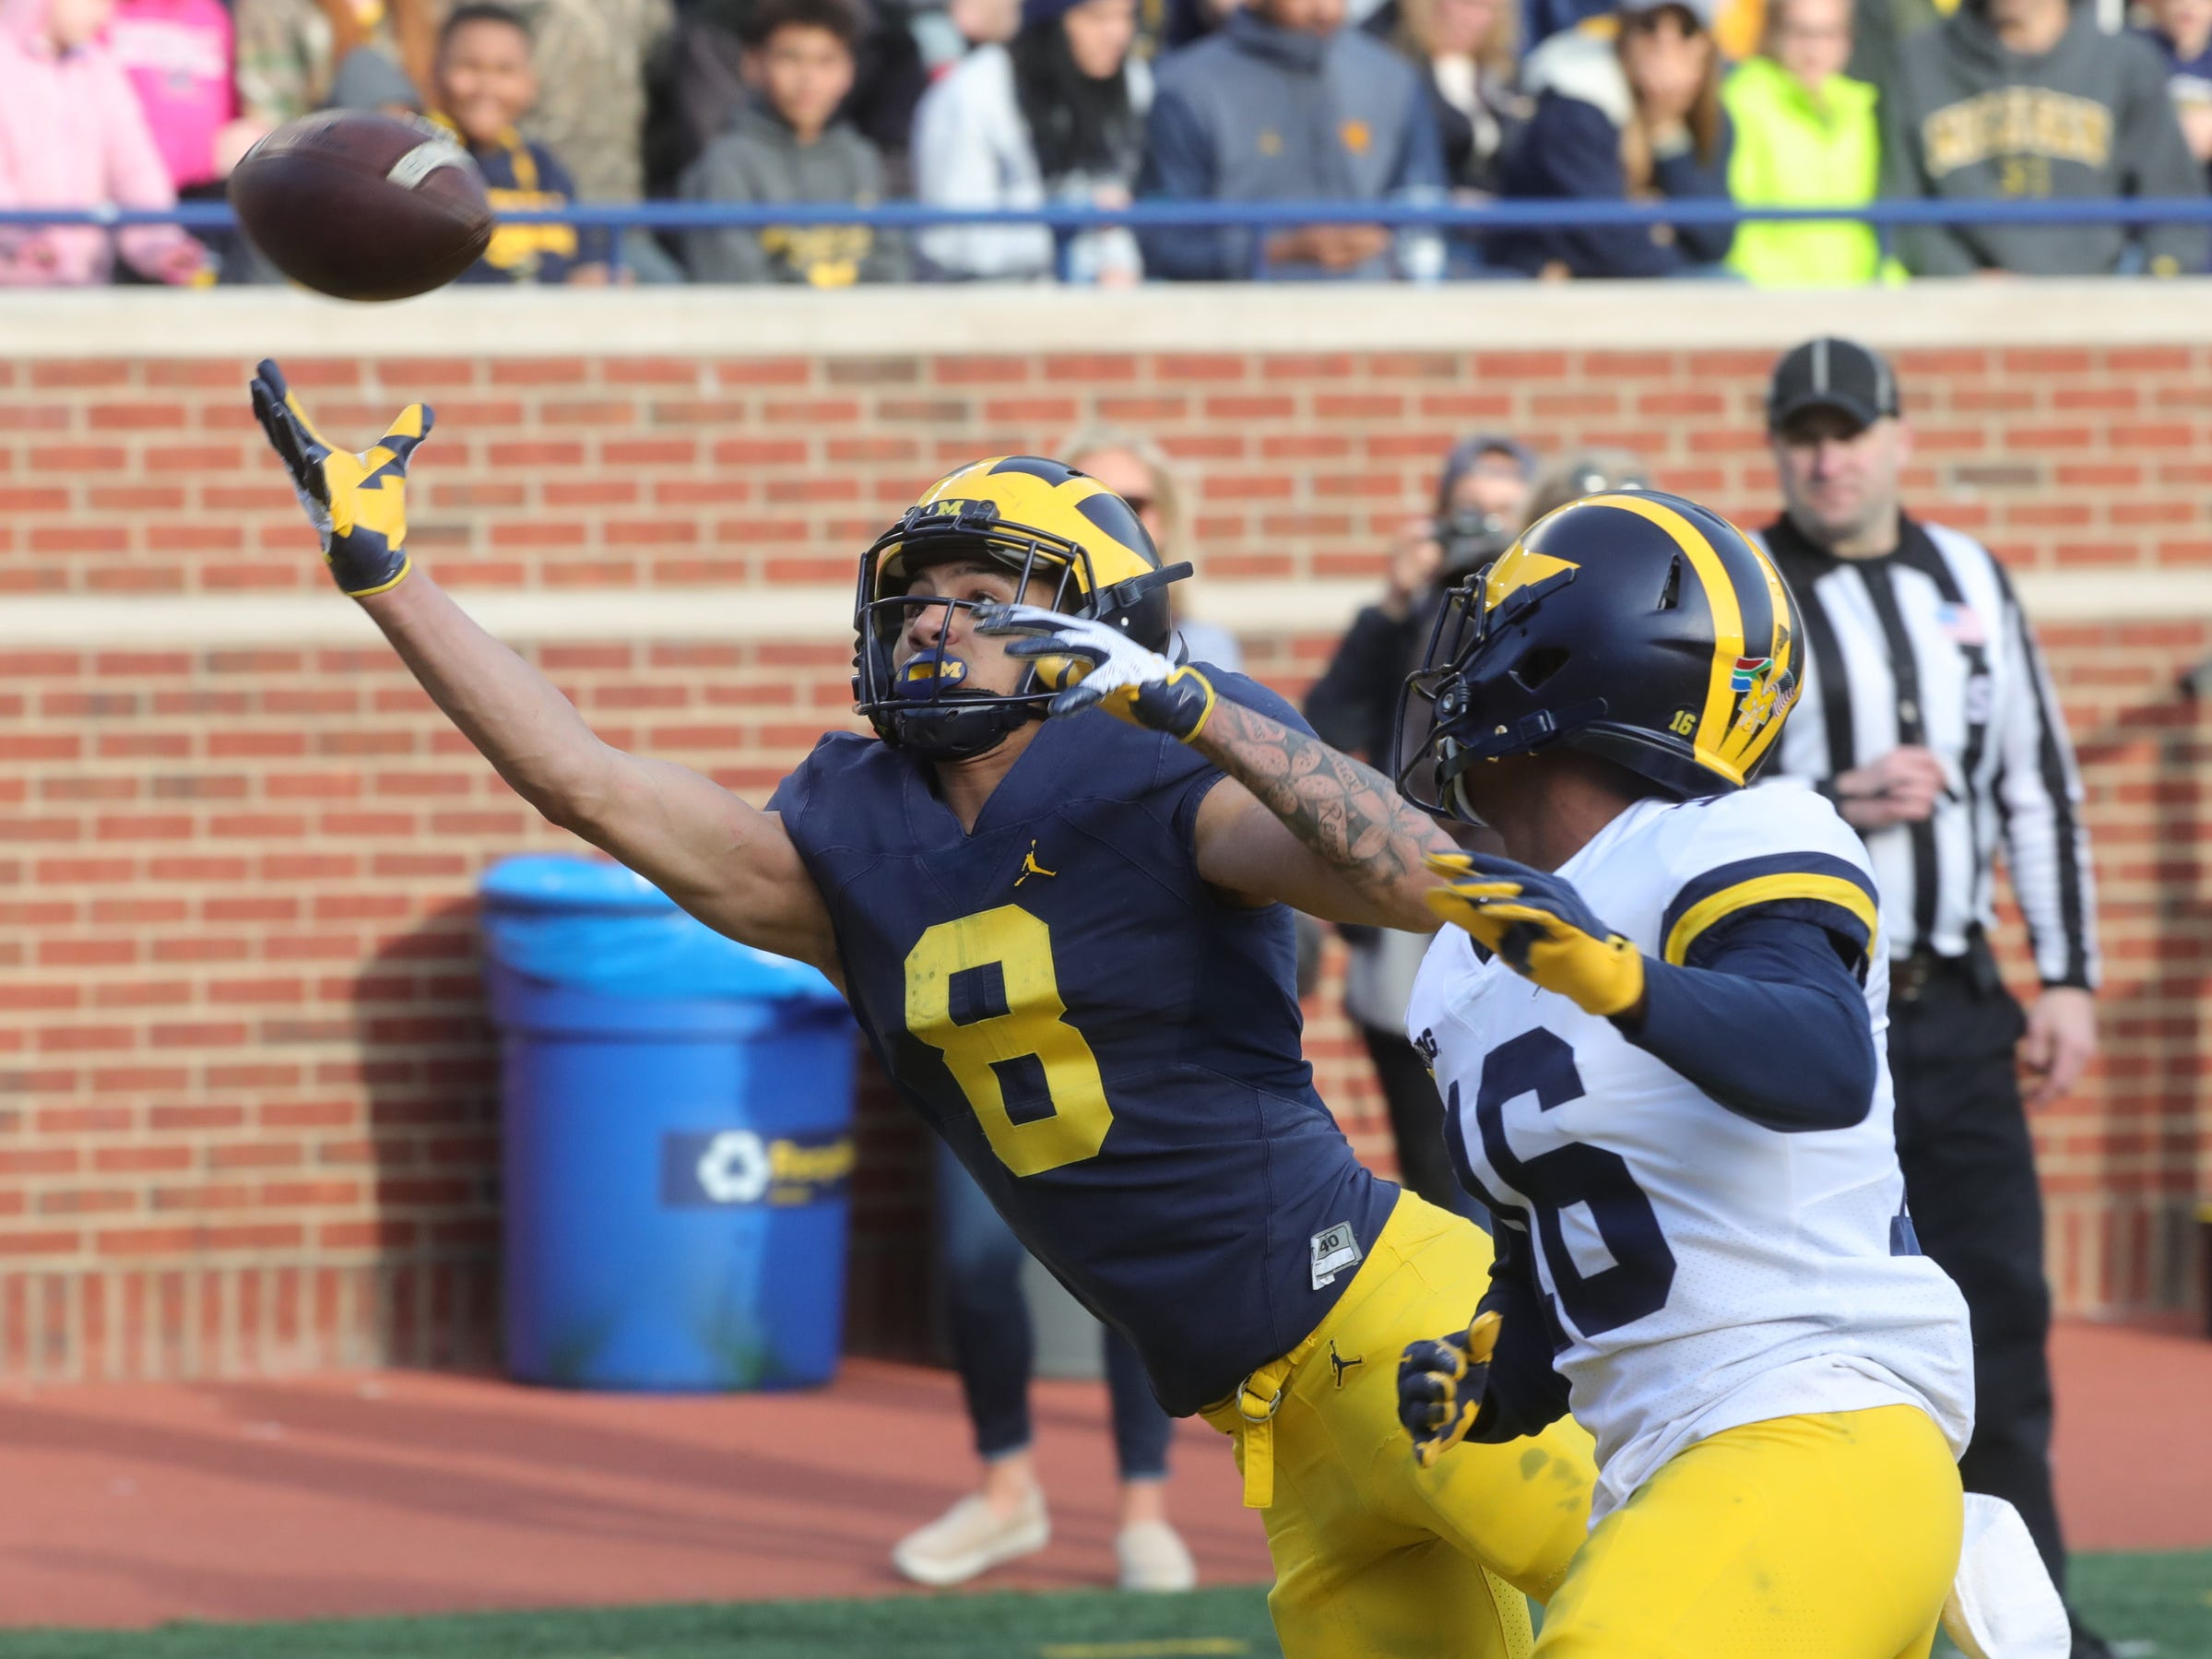 Michigan receiver Ronnie Bell tries to make a catch against defensive back Jaylen Kelly-Powell during the spring game Saturday, April 13, 2019 at Michigan Stadium in Ann Arbor.